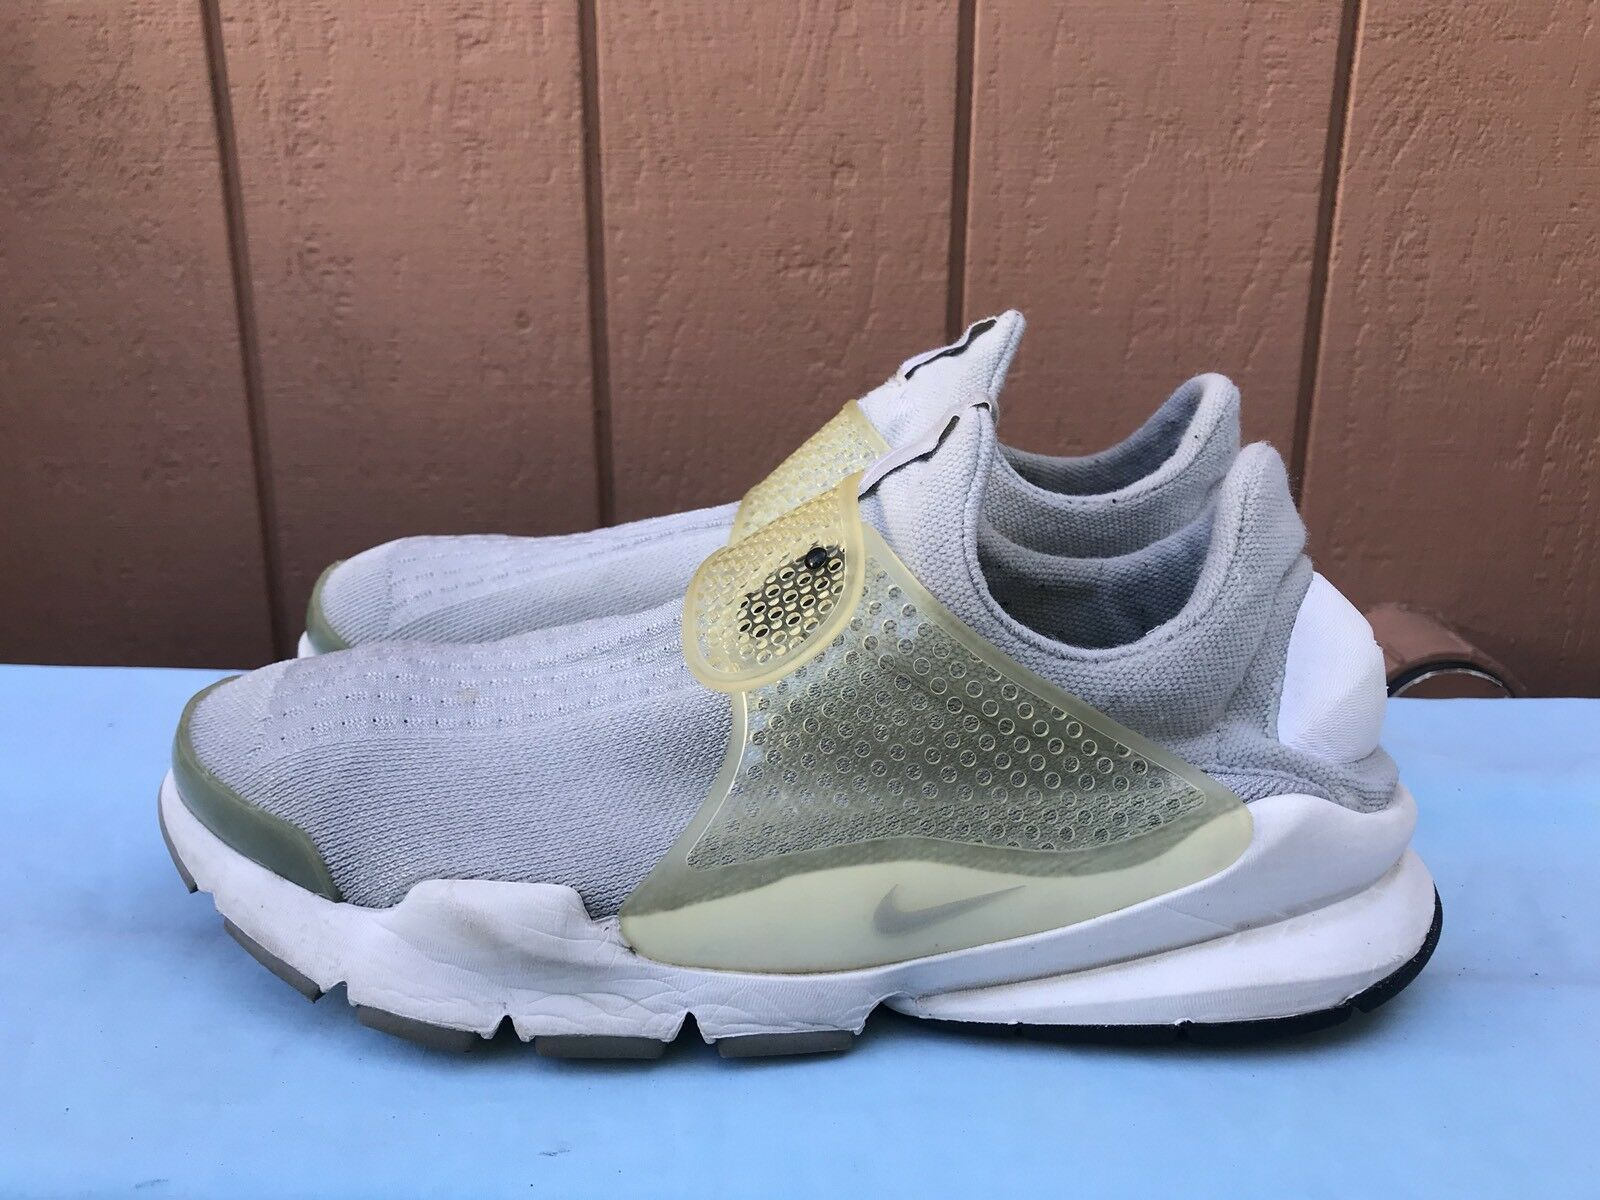 RARE! EUC Nike Sock Dart SP 686058 011 Men's Size US 12 Gray Running Shoes A6